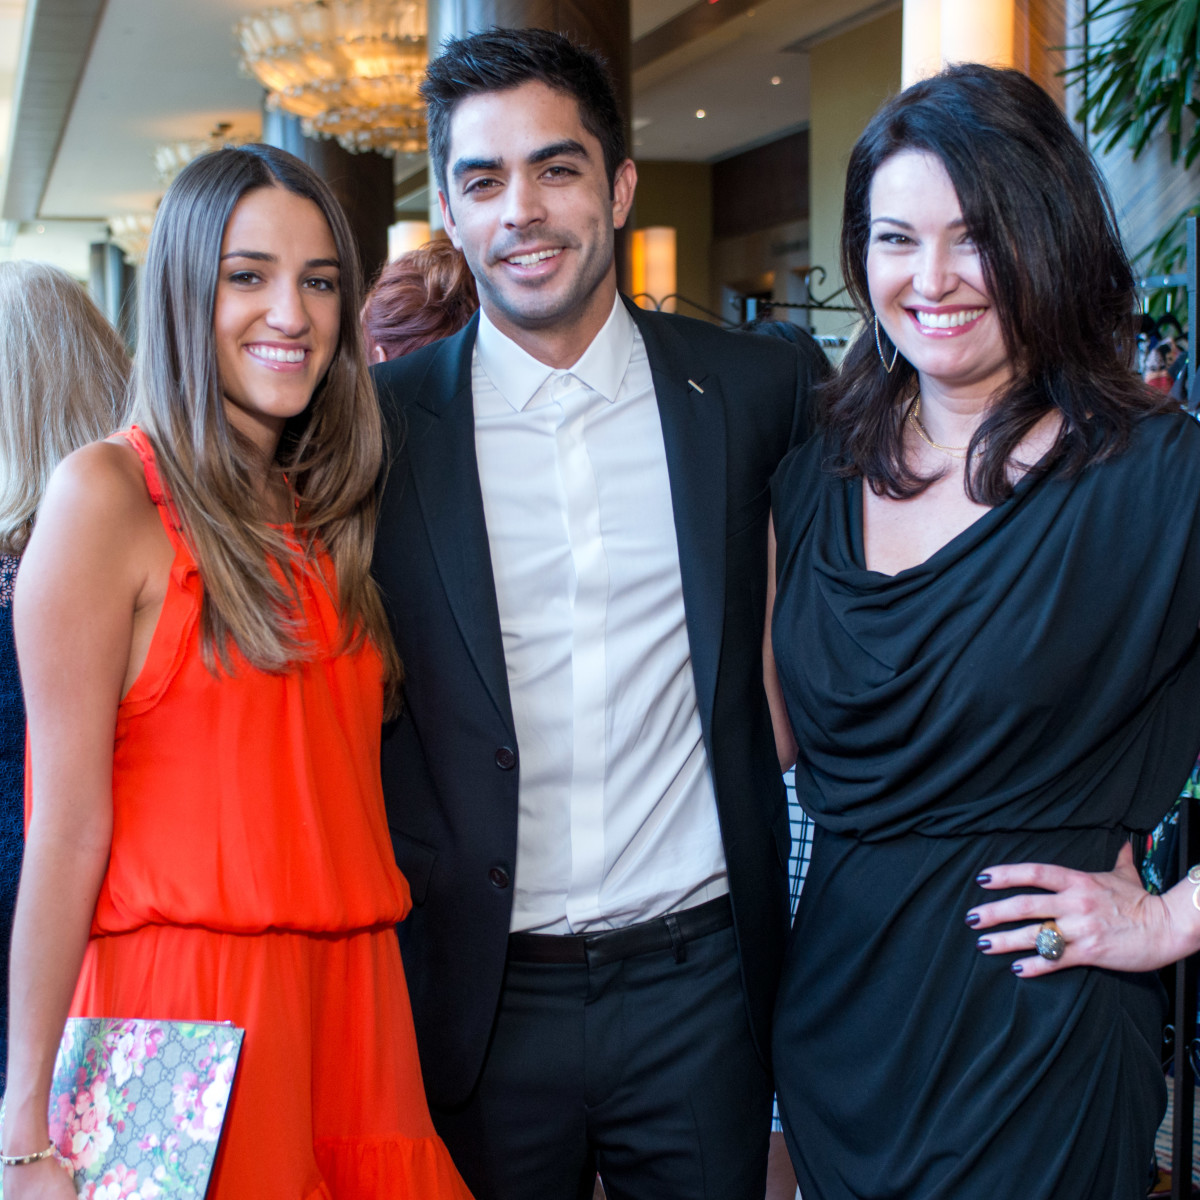 Latin Women's Initiative luncheon 5/16,  Gaby Alvarez, Jonathan Barbieri, Claudia Labao.